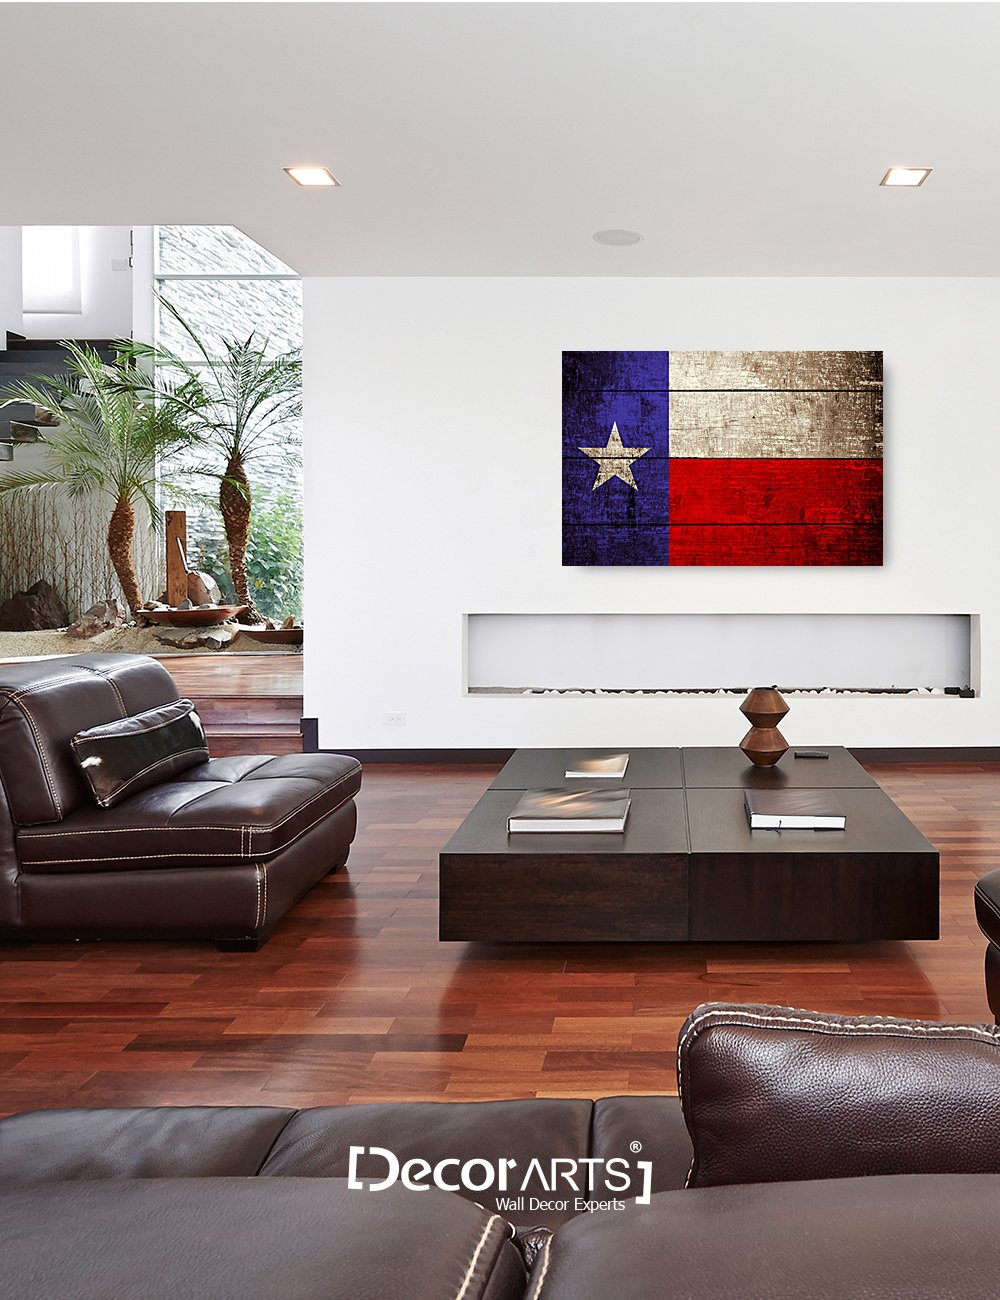 DECORARTS – Texas State Flag. Giclee Print on 100 Archival Cotton Canvas, Canvas Wall Art for Wall Decor 36x24x1.5